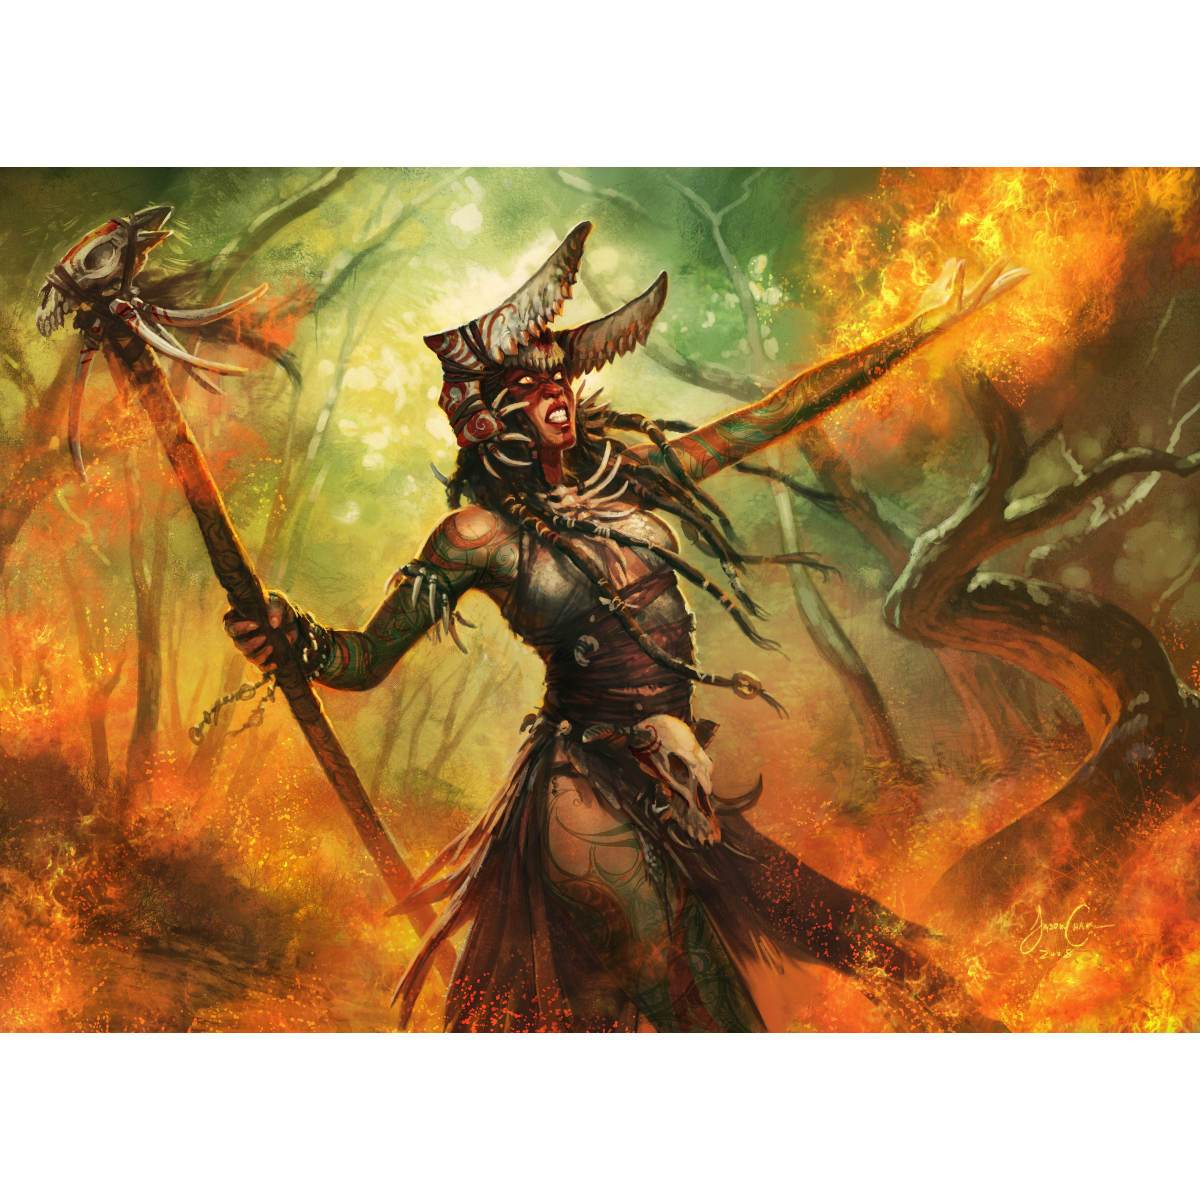 Rakka Mar Print - Print - Original Magic Art - Accessories for Magic the Gathering and other card games